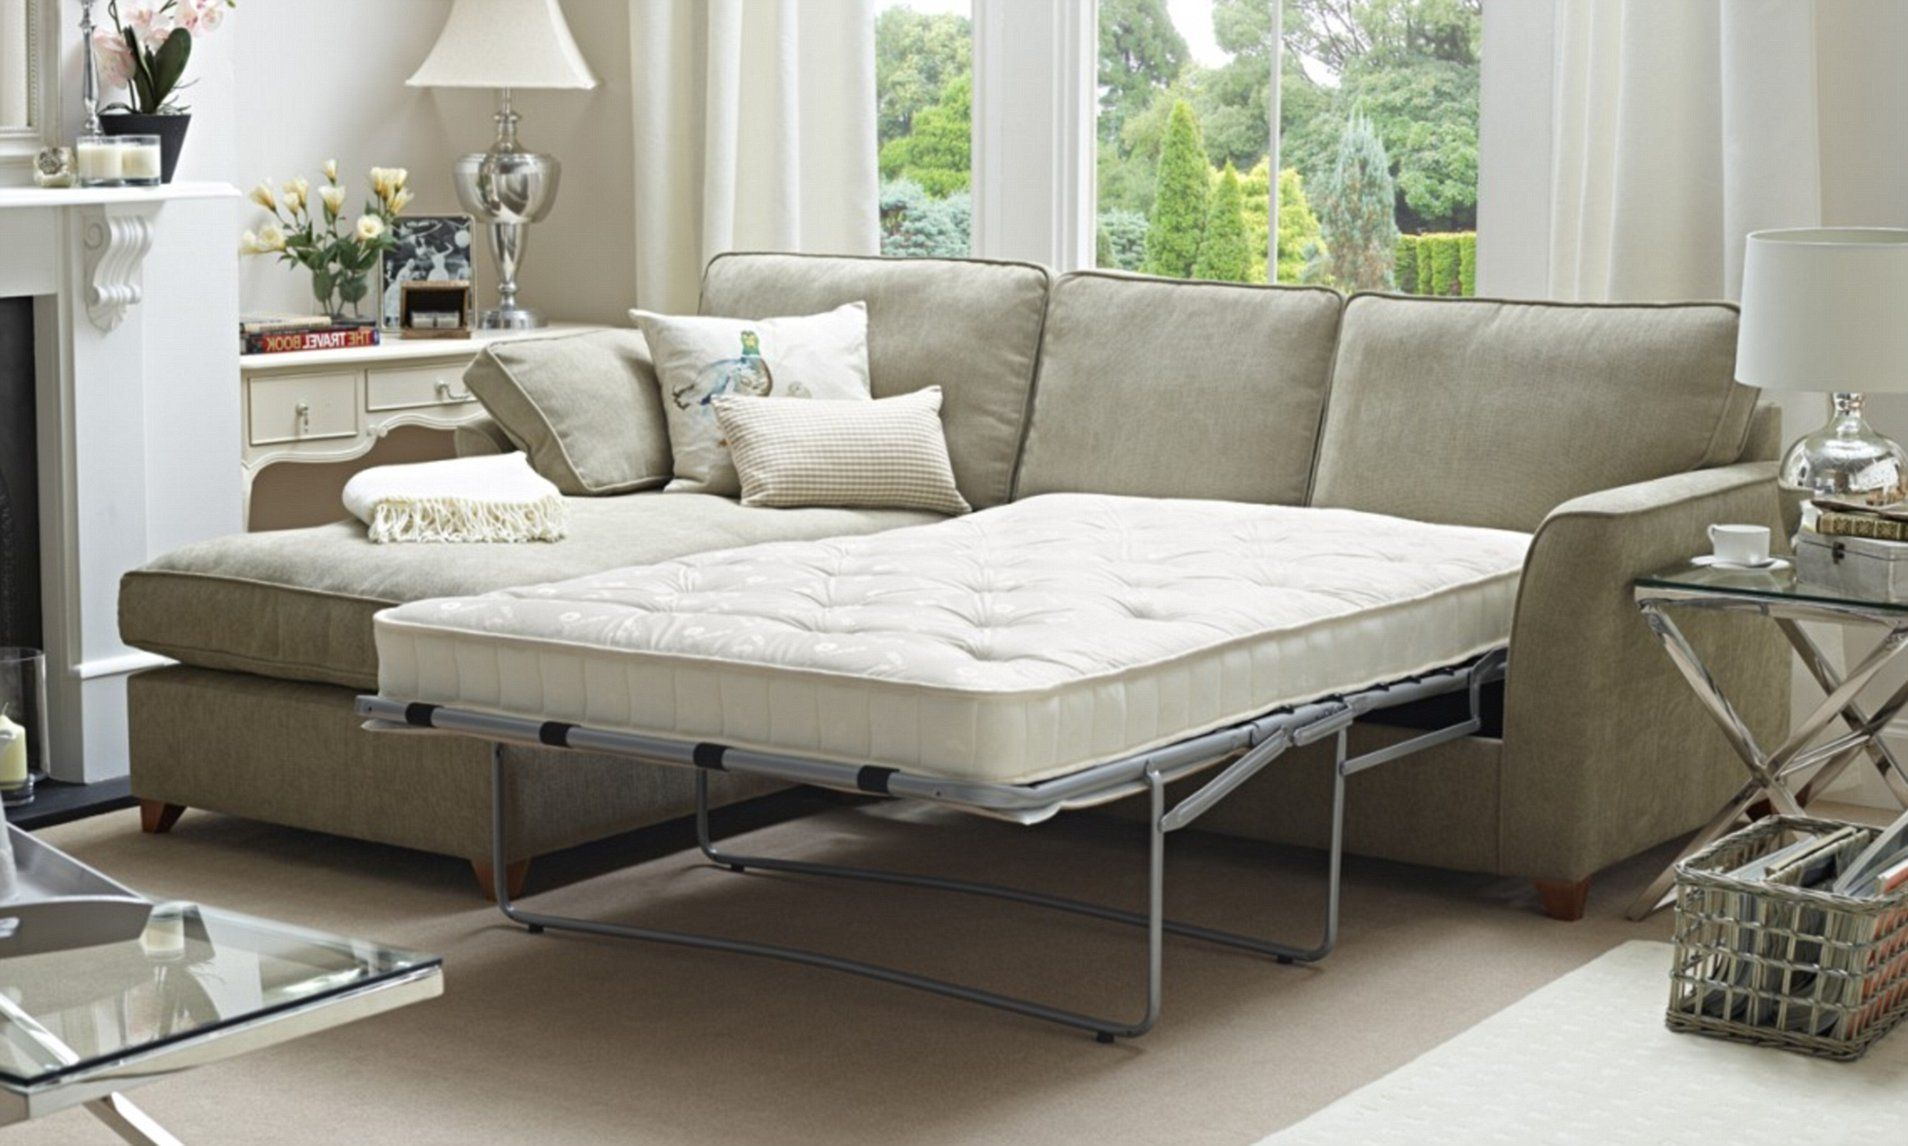 Six of the best sofa beds Sofa bed for small spaces